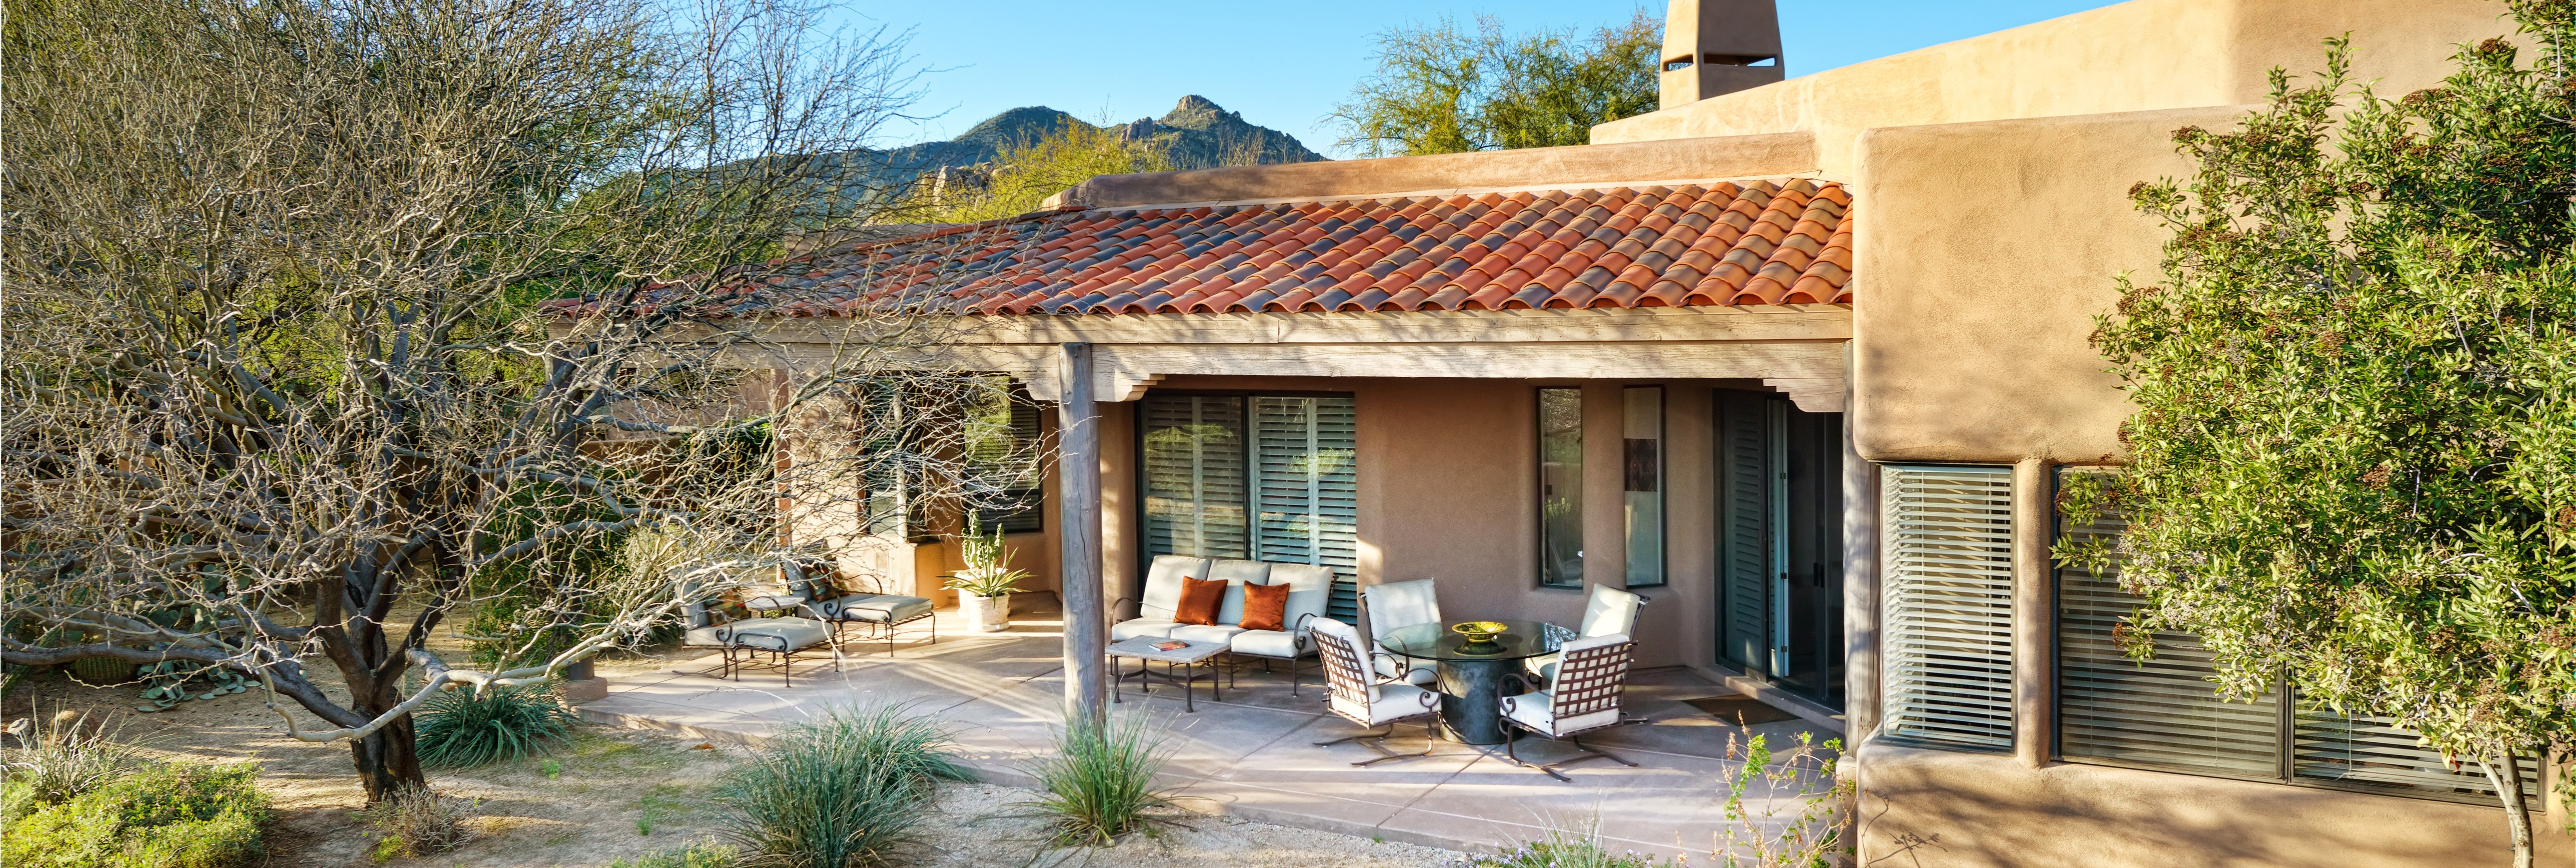 Relax and enjoy the Sonoran Desert from your private patio.